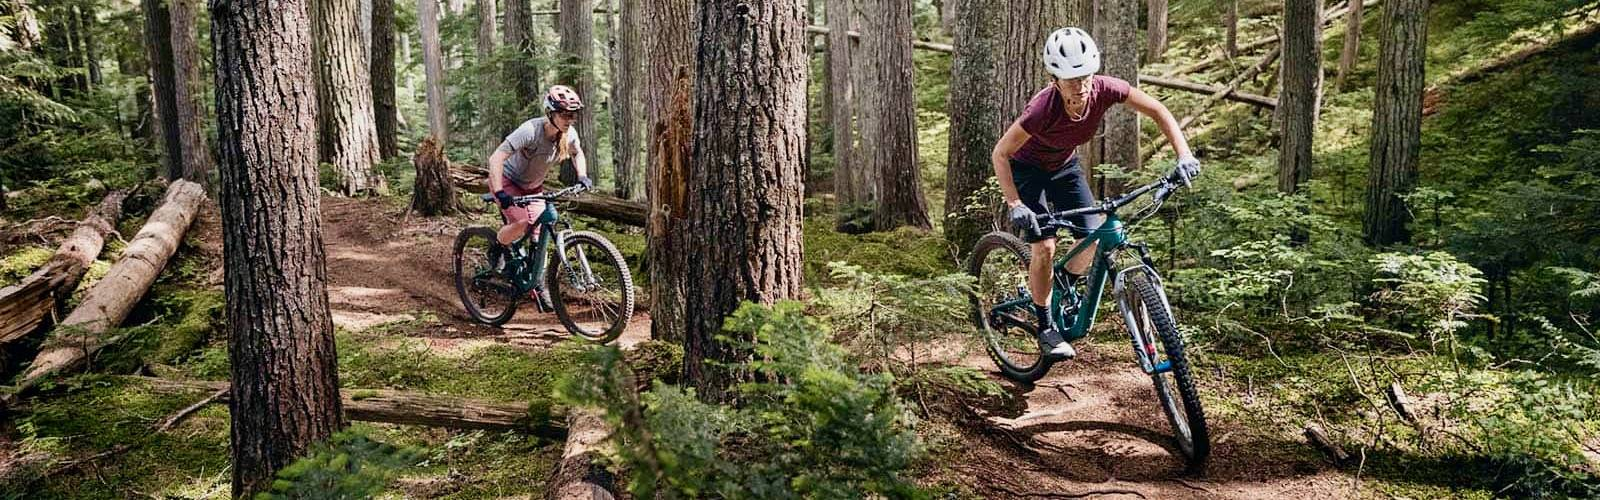 Juliana bikes has the best mountain bikes for women.